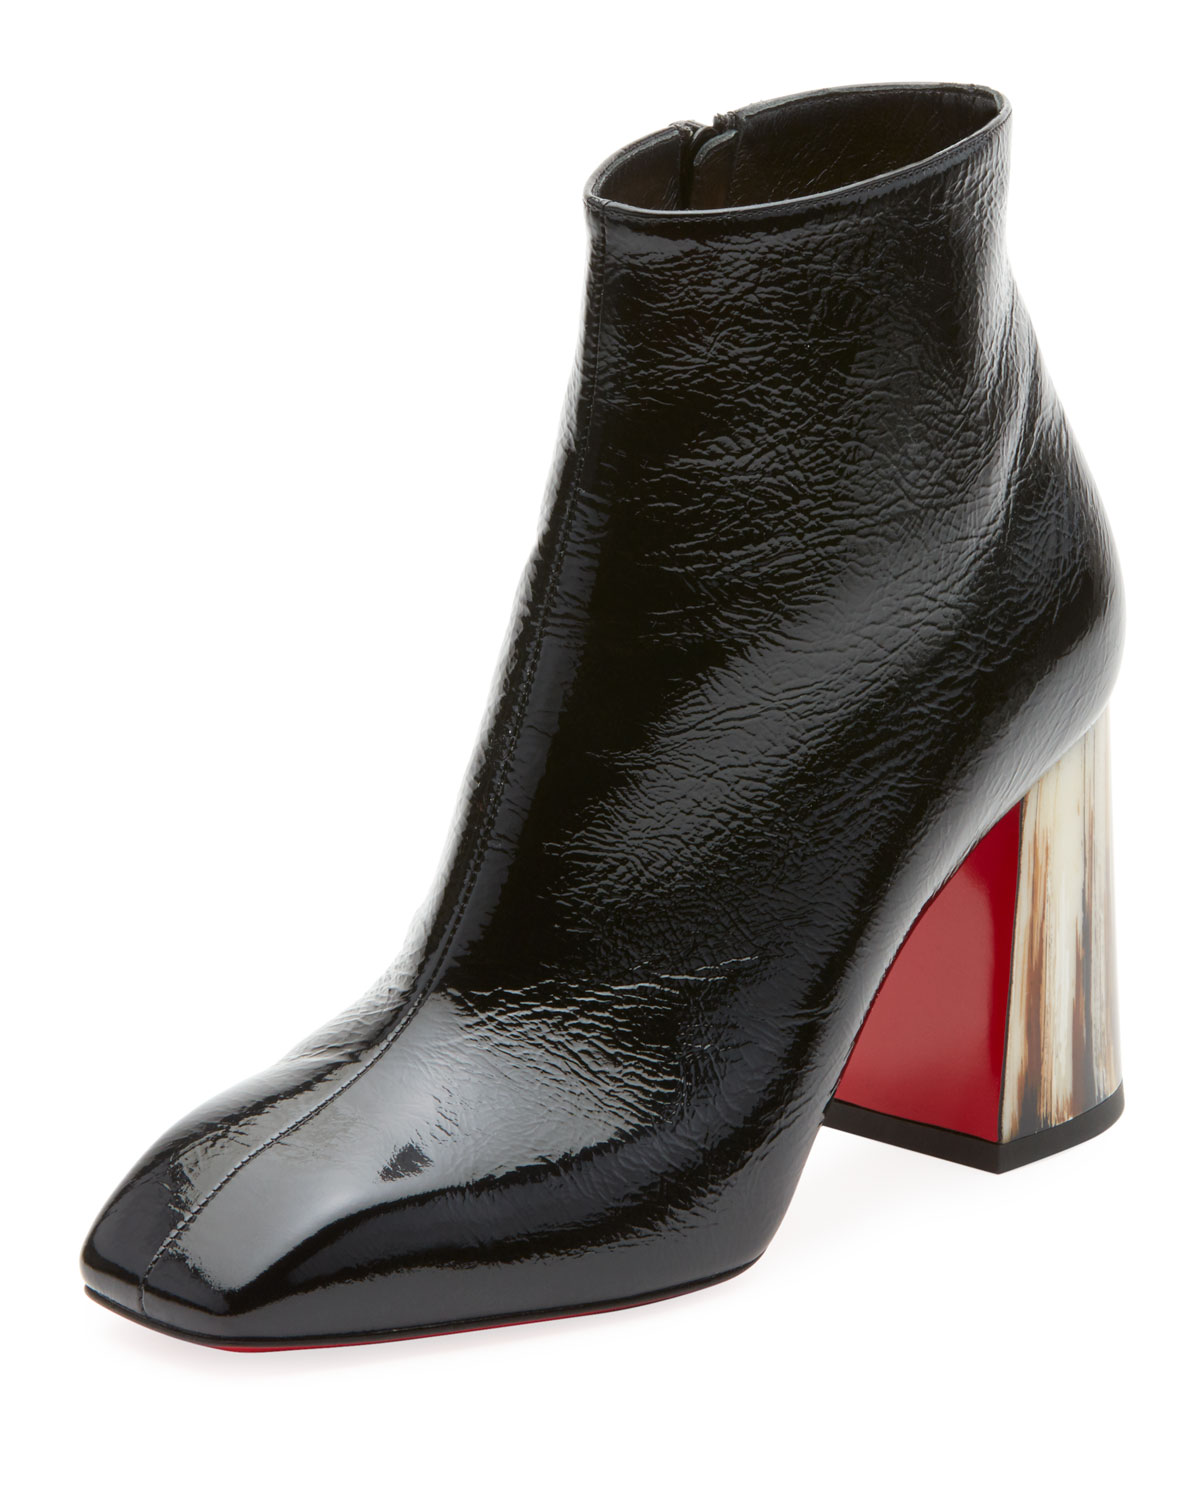 CHRISTIAN LOUBOUTIN HILCONICO VINTAGE SHINY RED SOLE BOOTIE